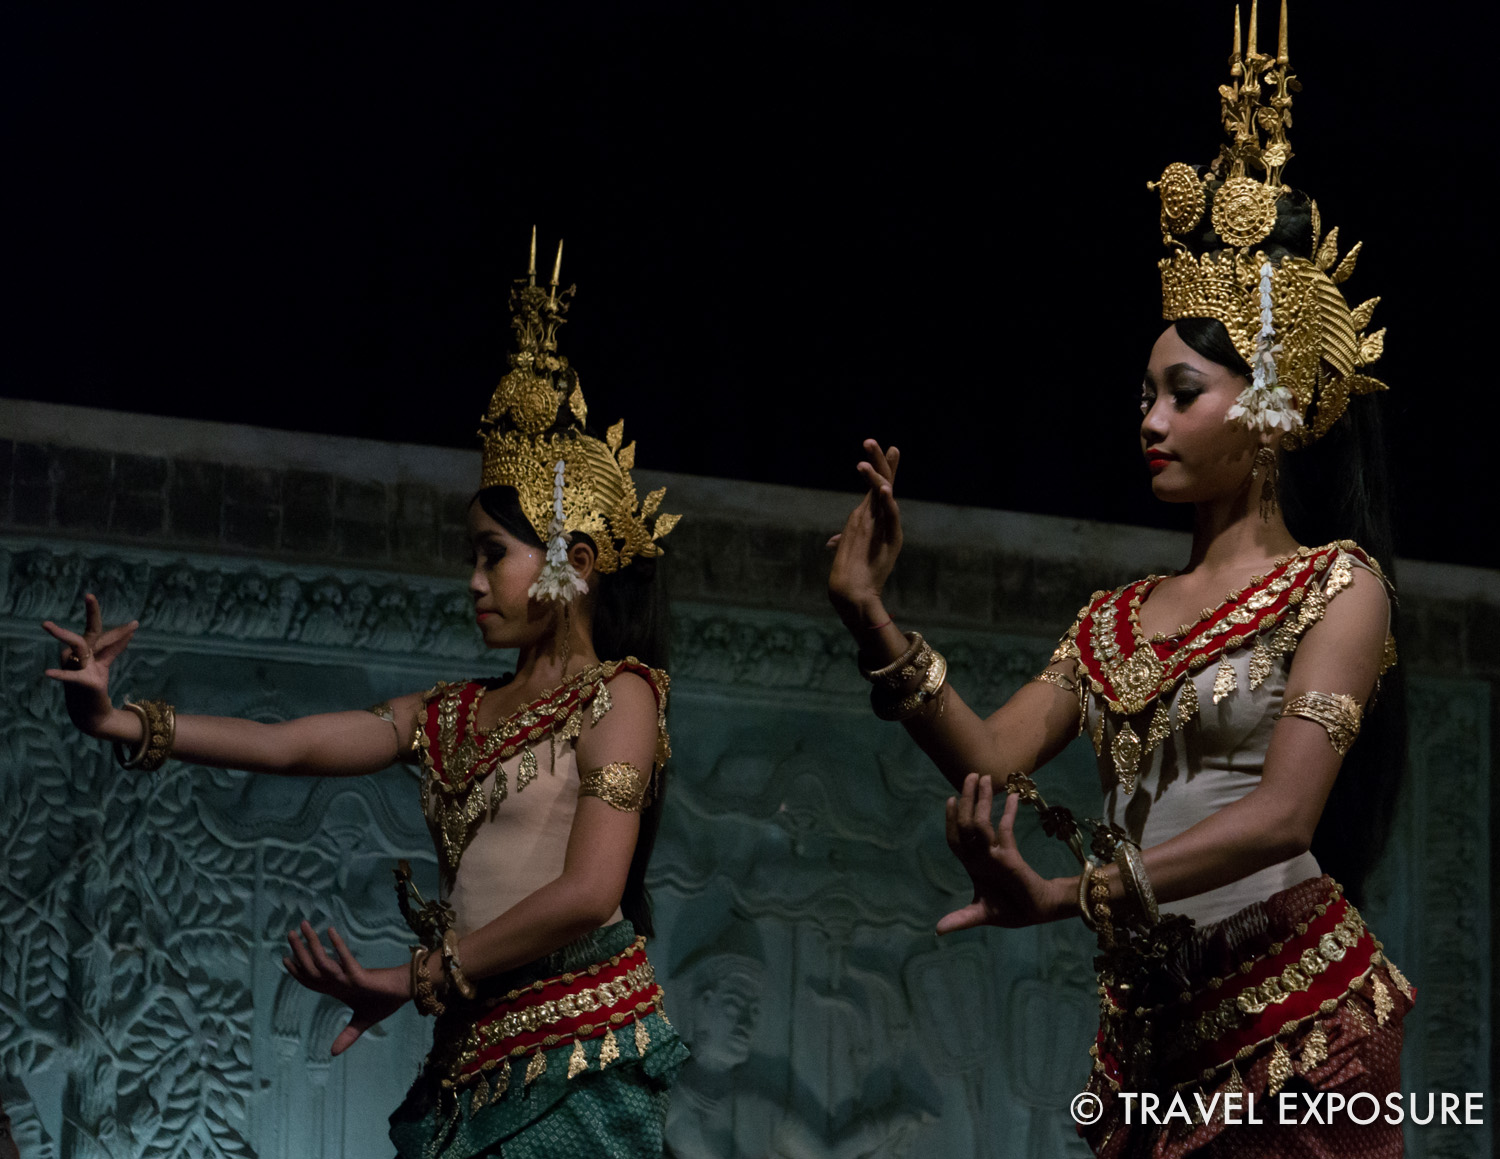 WEEK OF DECEMBER 1 Two women make delicate hand gestures during an Apsara dance in Siem Reap, Cambodia.